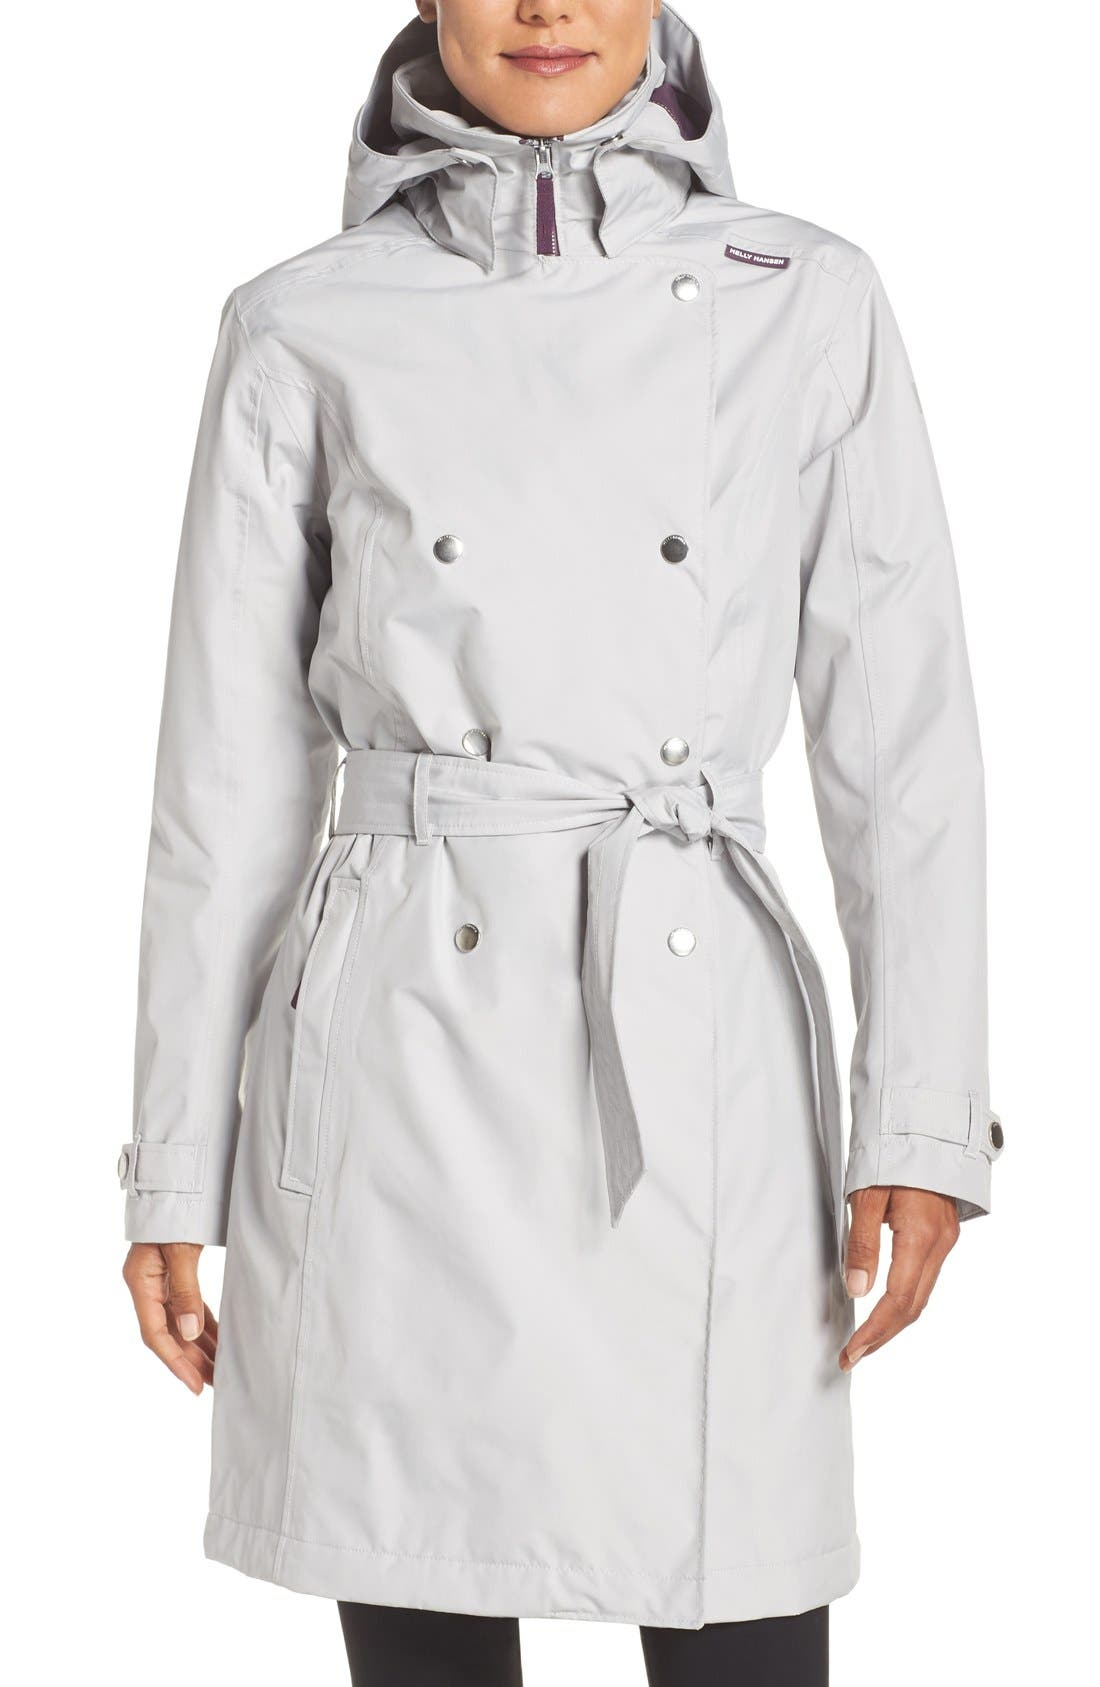 'Welsey' Insulated Waterproof Trench Coat,                         Main,                         color, Light Grey